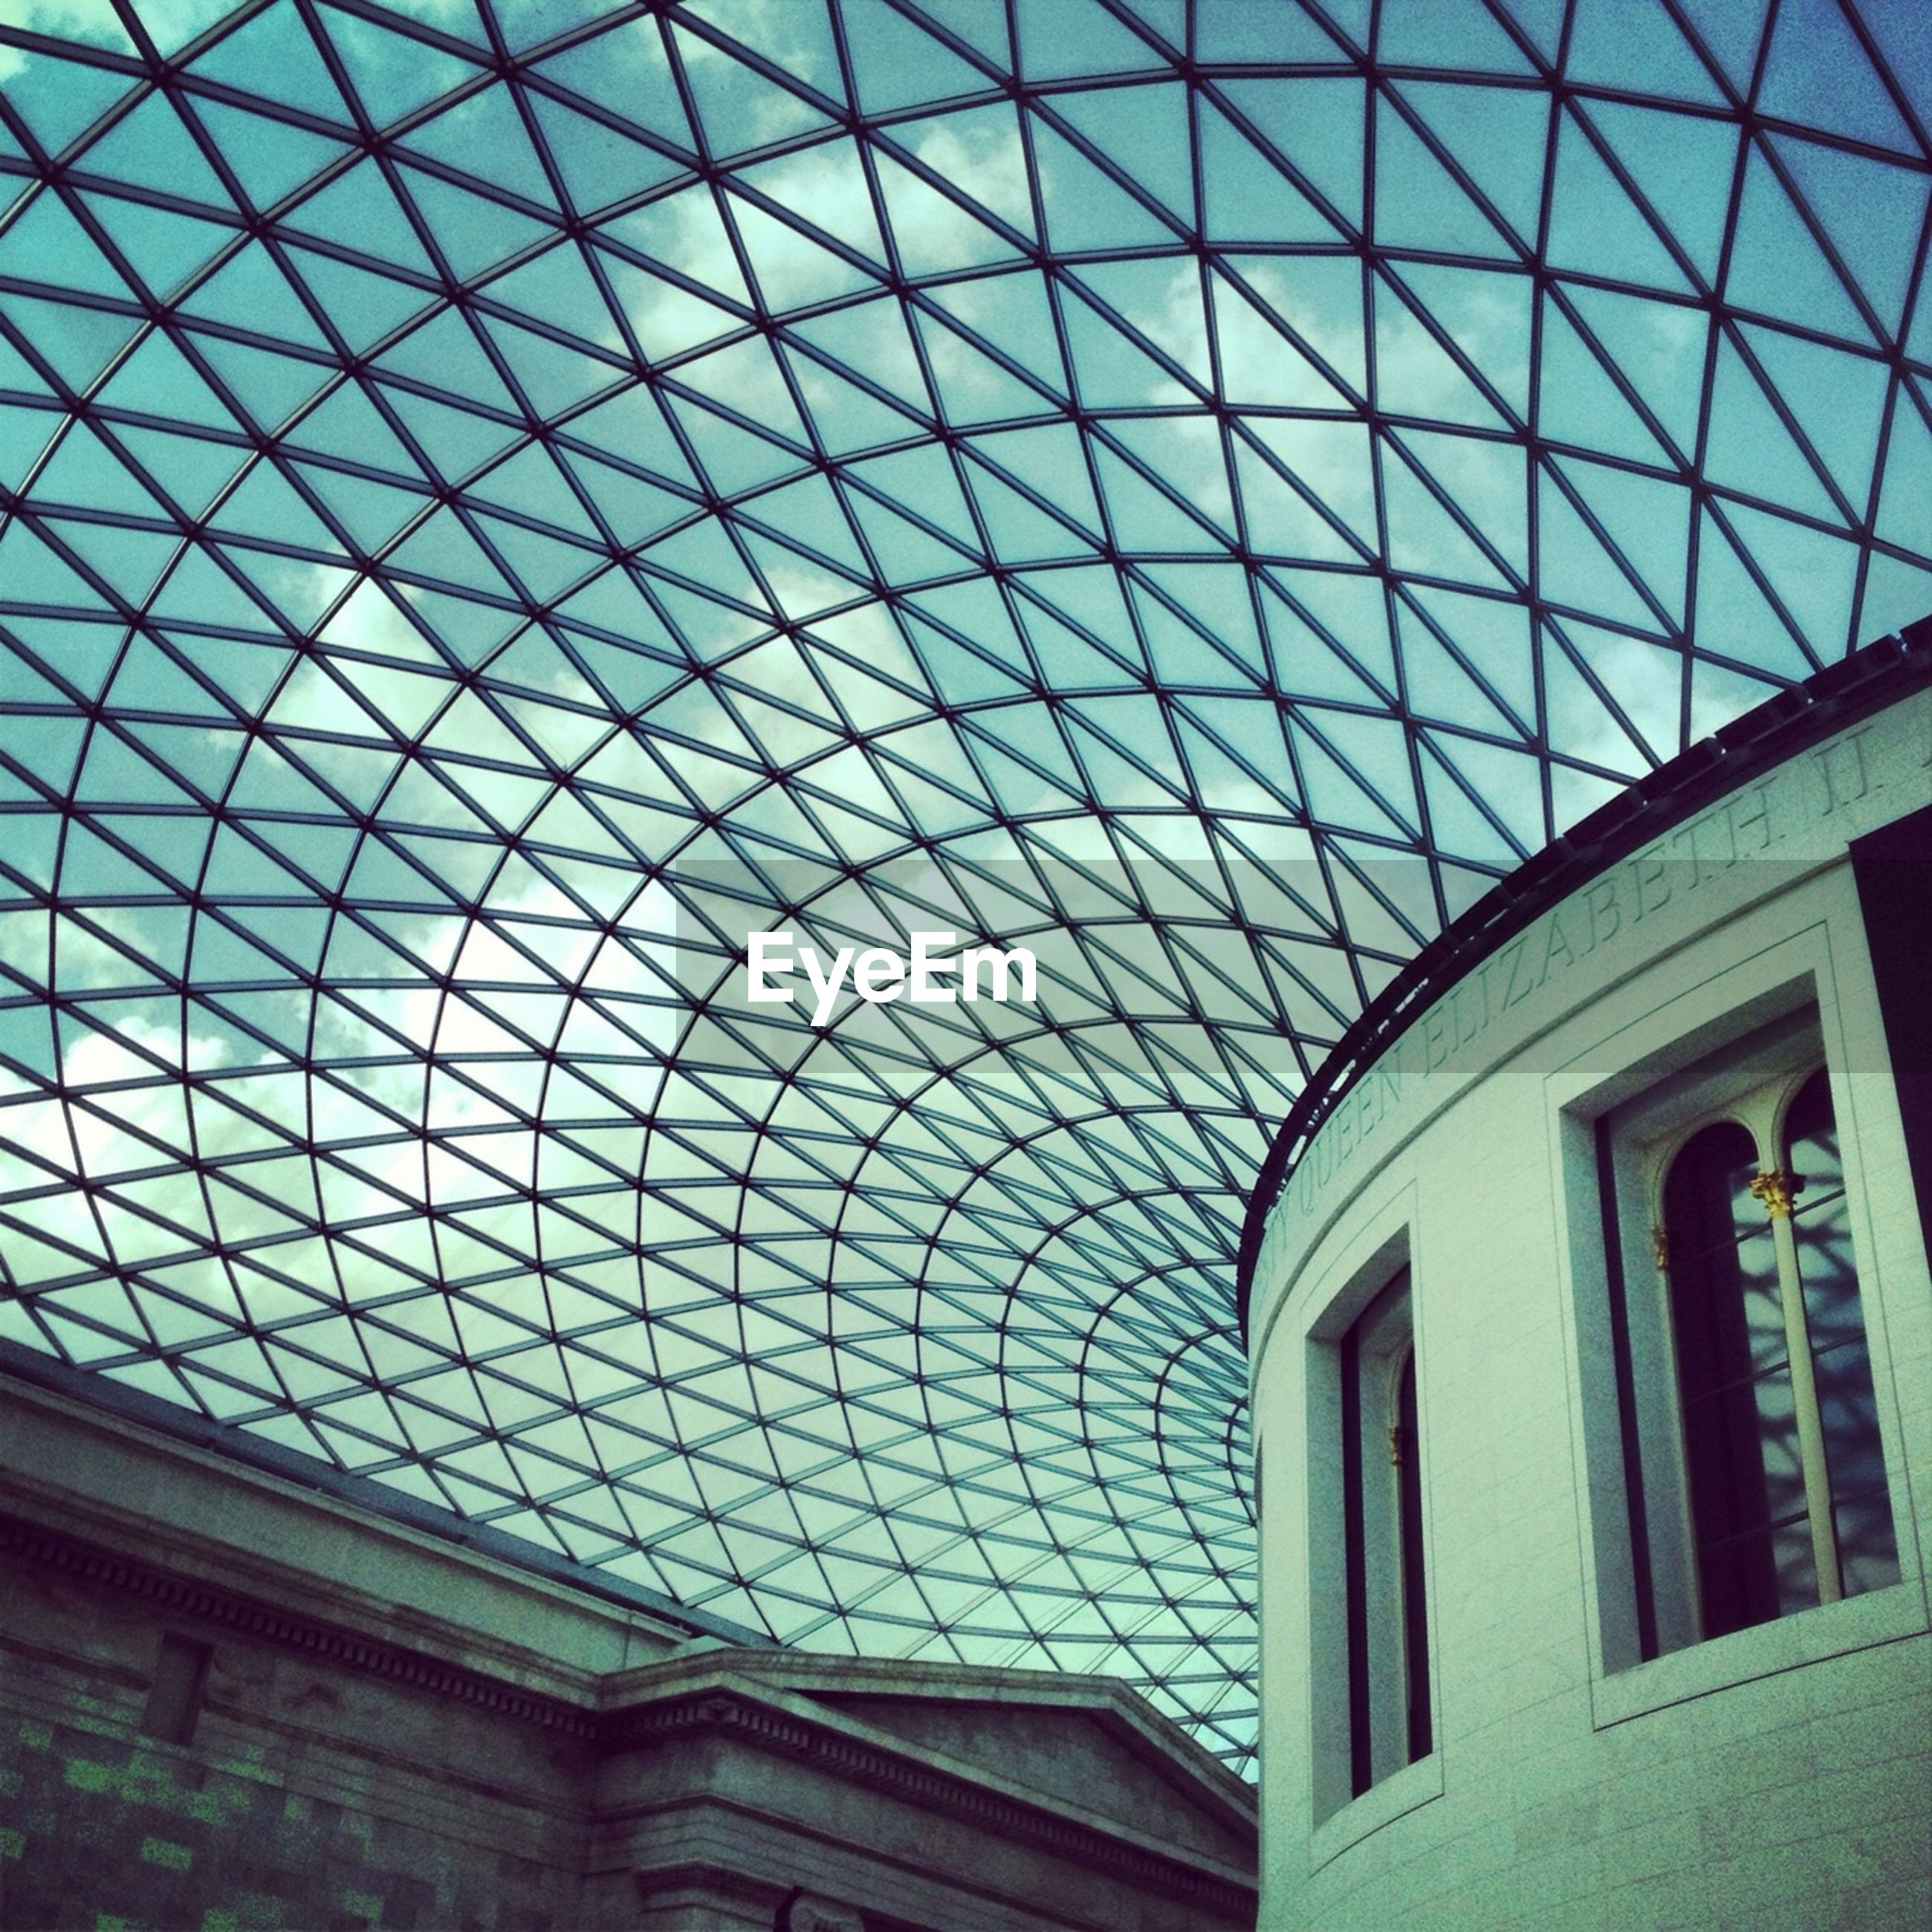 architecture, ceiling, built structure, indoors, low angle view, architectural feature, skylight, pattern, glass - material, design, dome, window, modern, interior, directly below, building exterior, famous place, no people, day, arch